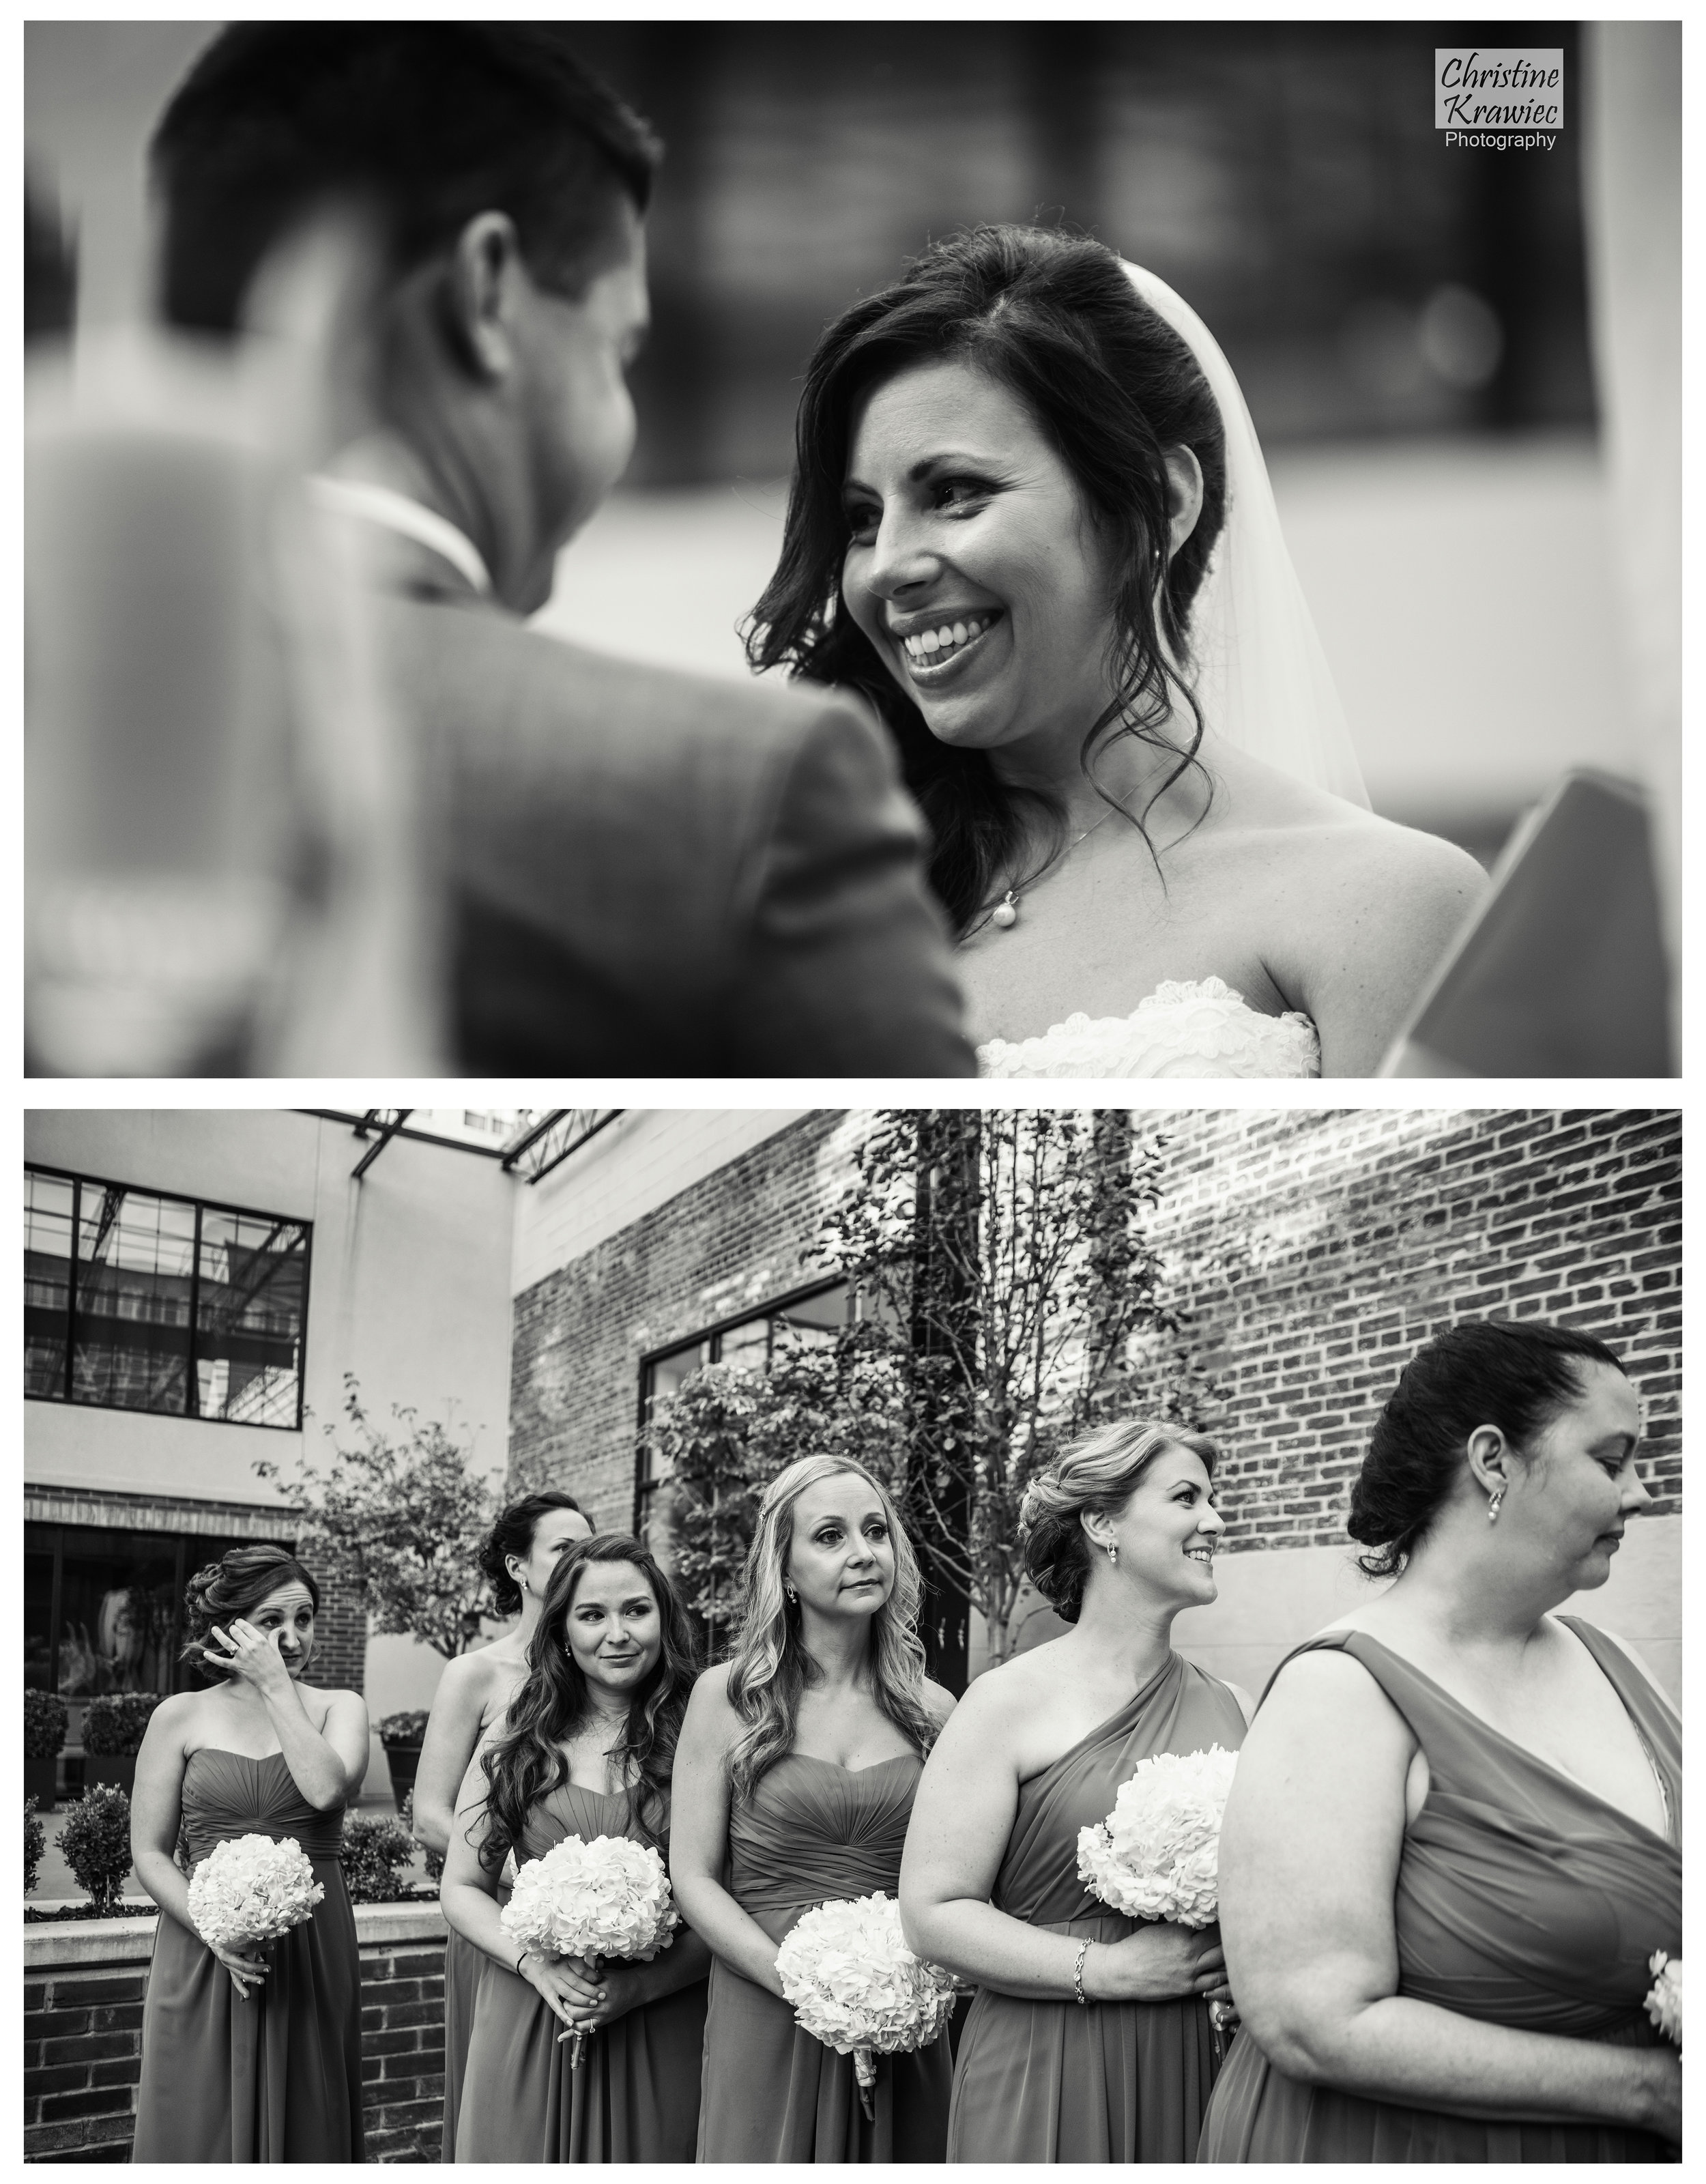 A bridesmaid's tear gets me every time